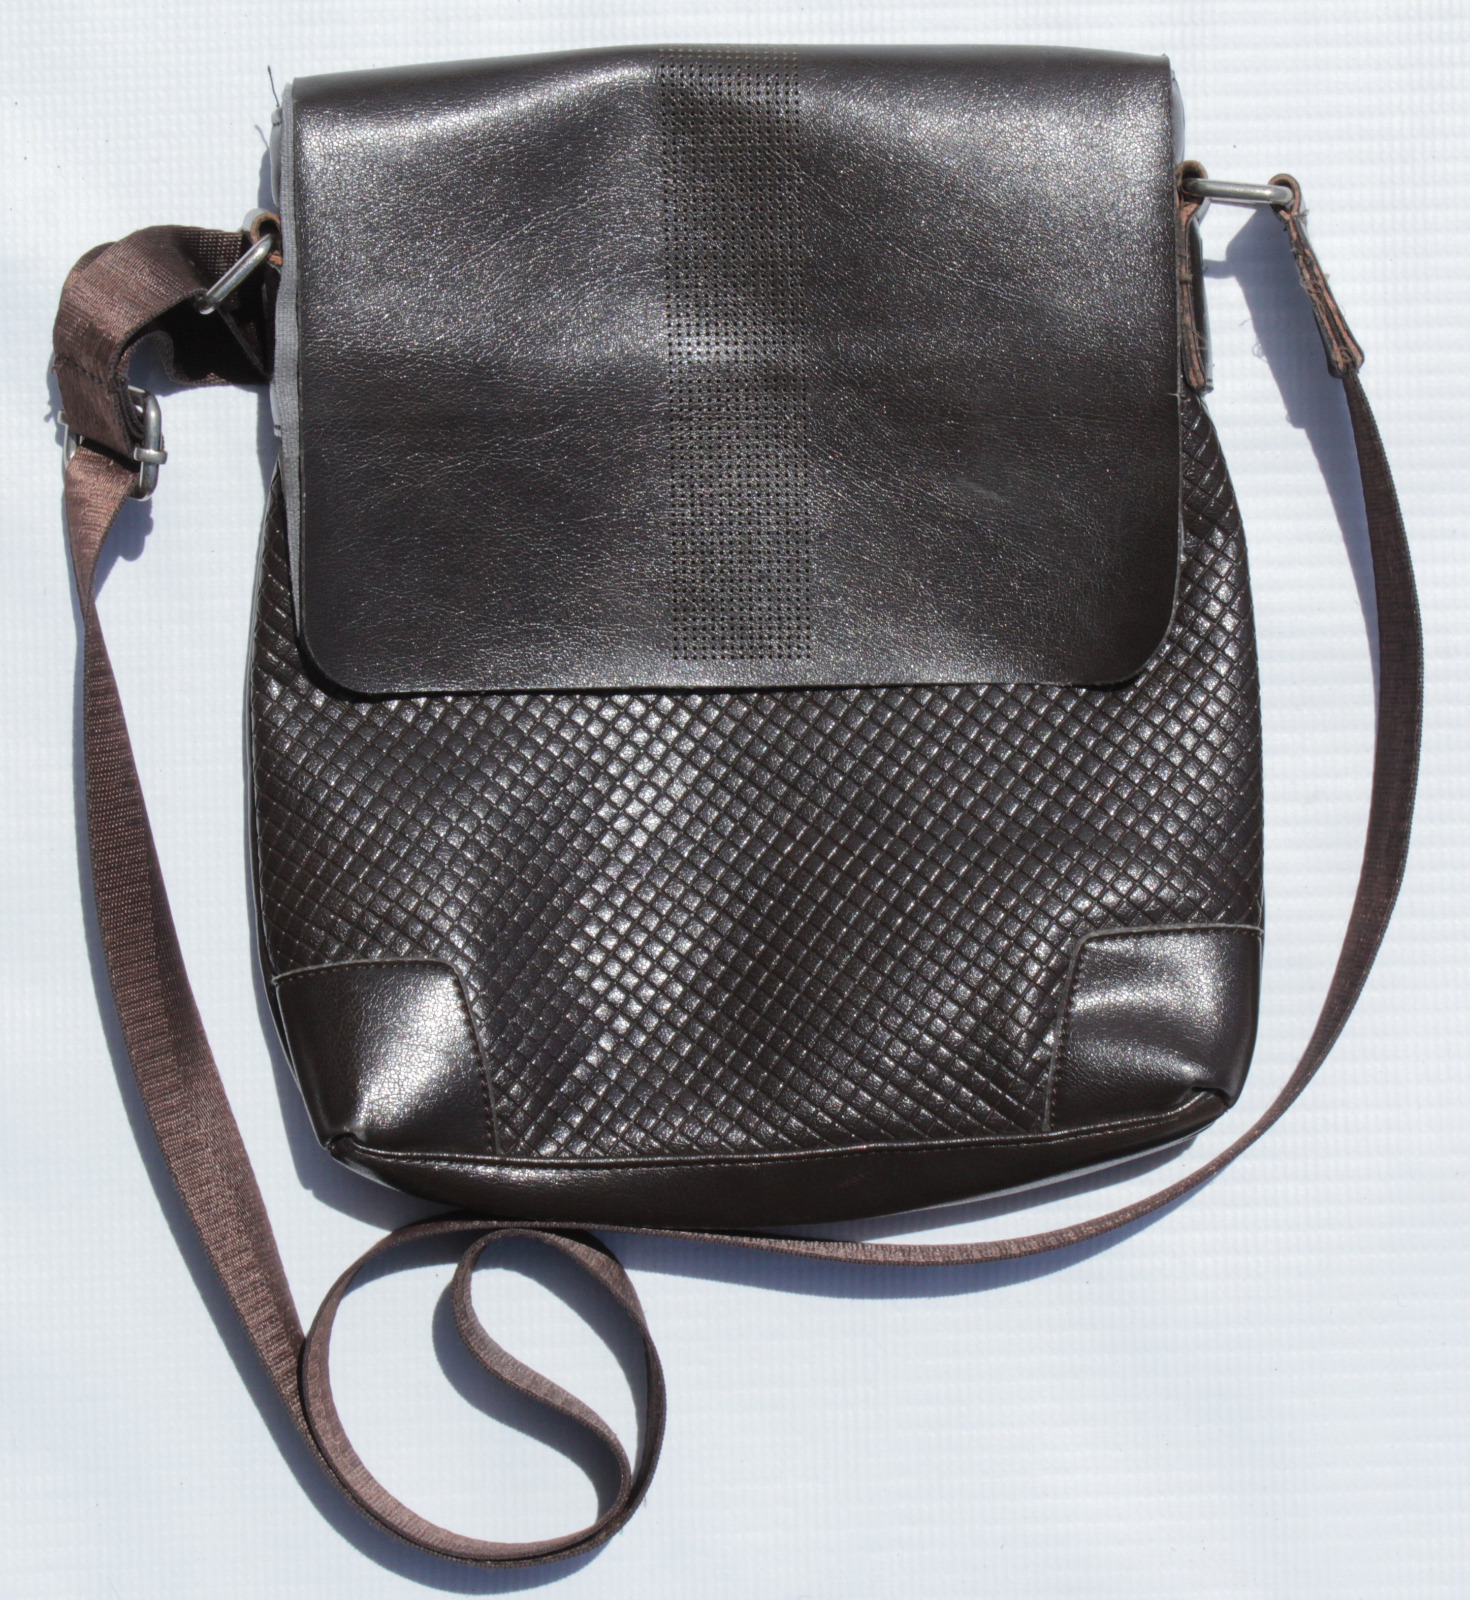 Coco Leather Purse